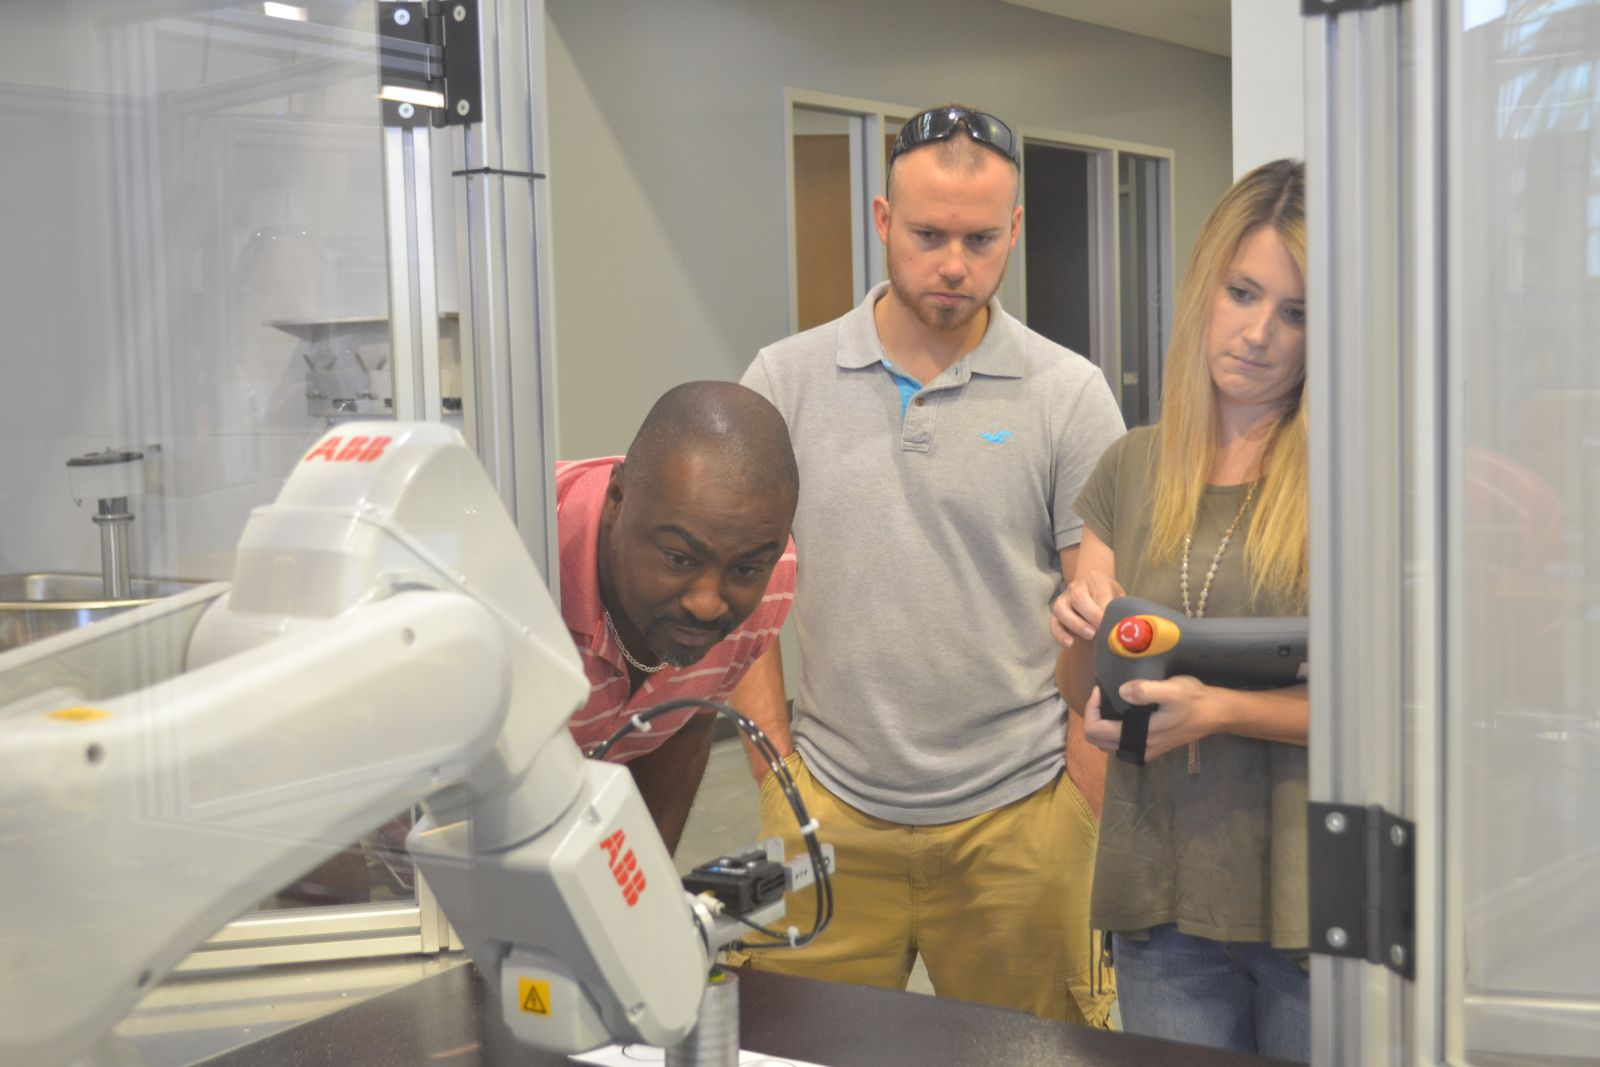 Rodney Jones, academic program director of mechatronics at Greenville Tech, left, and students Brandon Gillespie and Ashley Edmond maneuver the arm on an ABB robot at the Center for Manufacturing Innovation. (Photo by Teresa Cutlip)